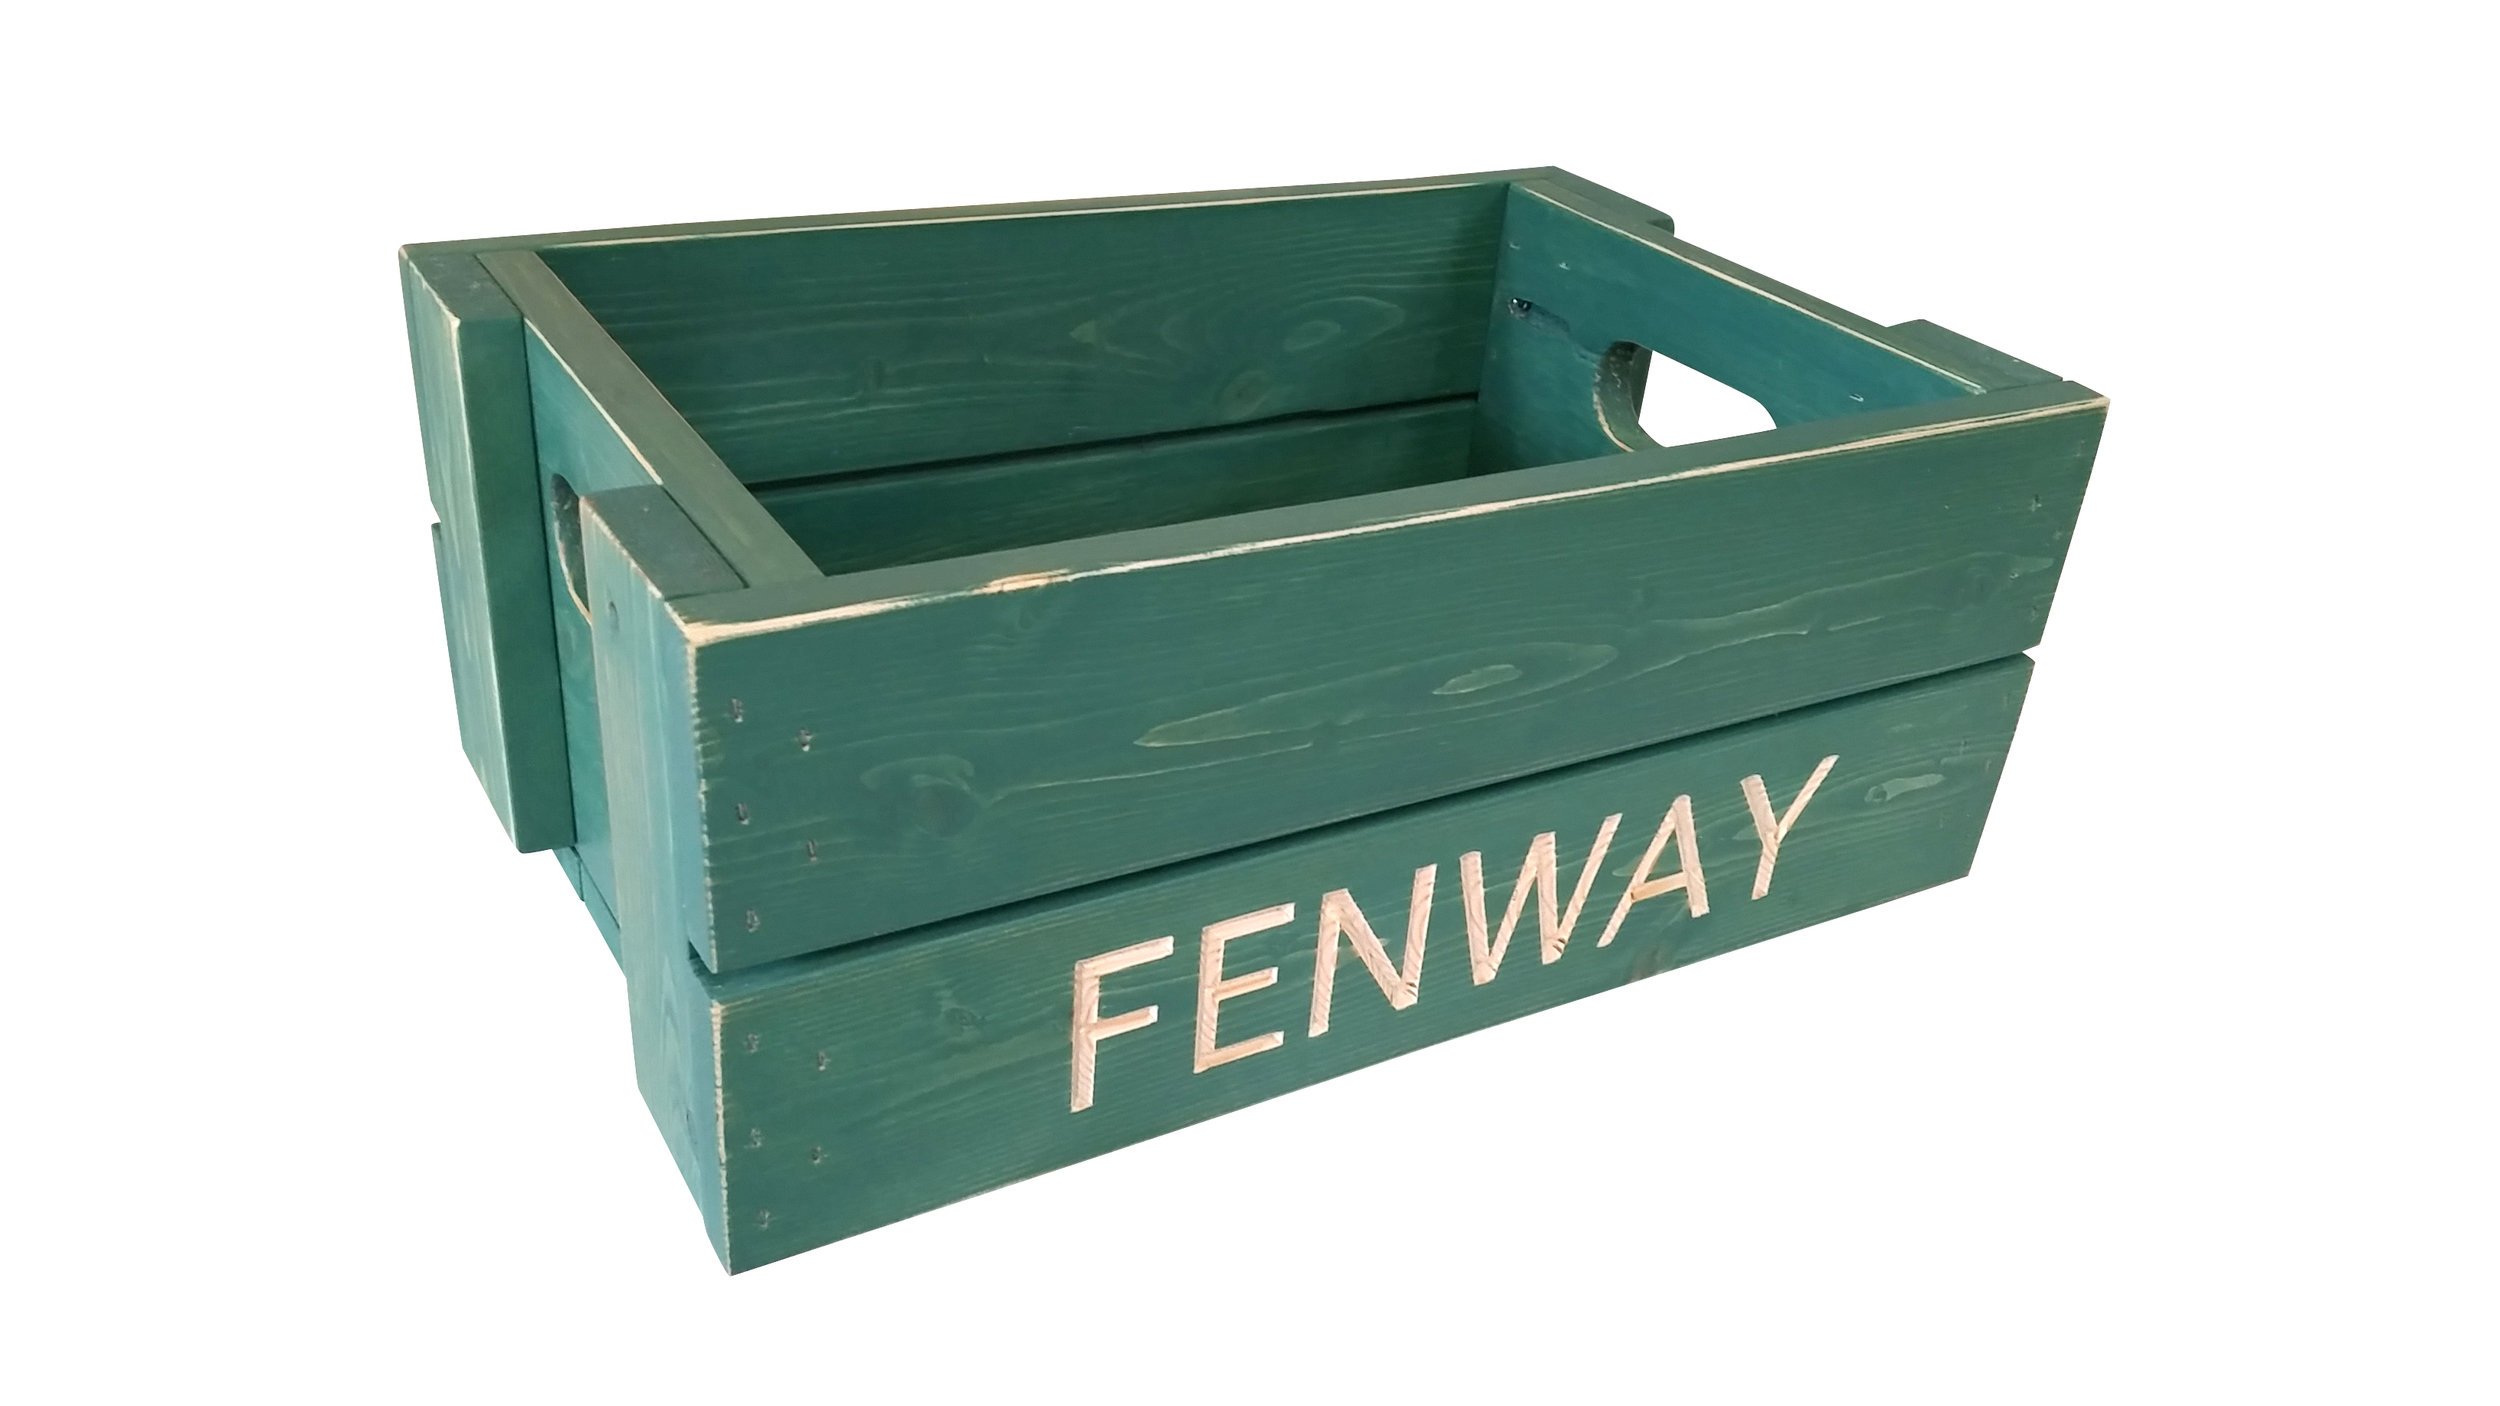 custom crates, asheville crate co., fenway park crate, asheville crate company